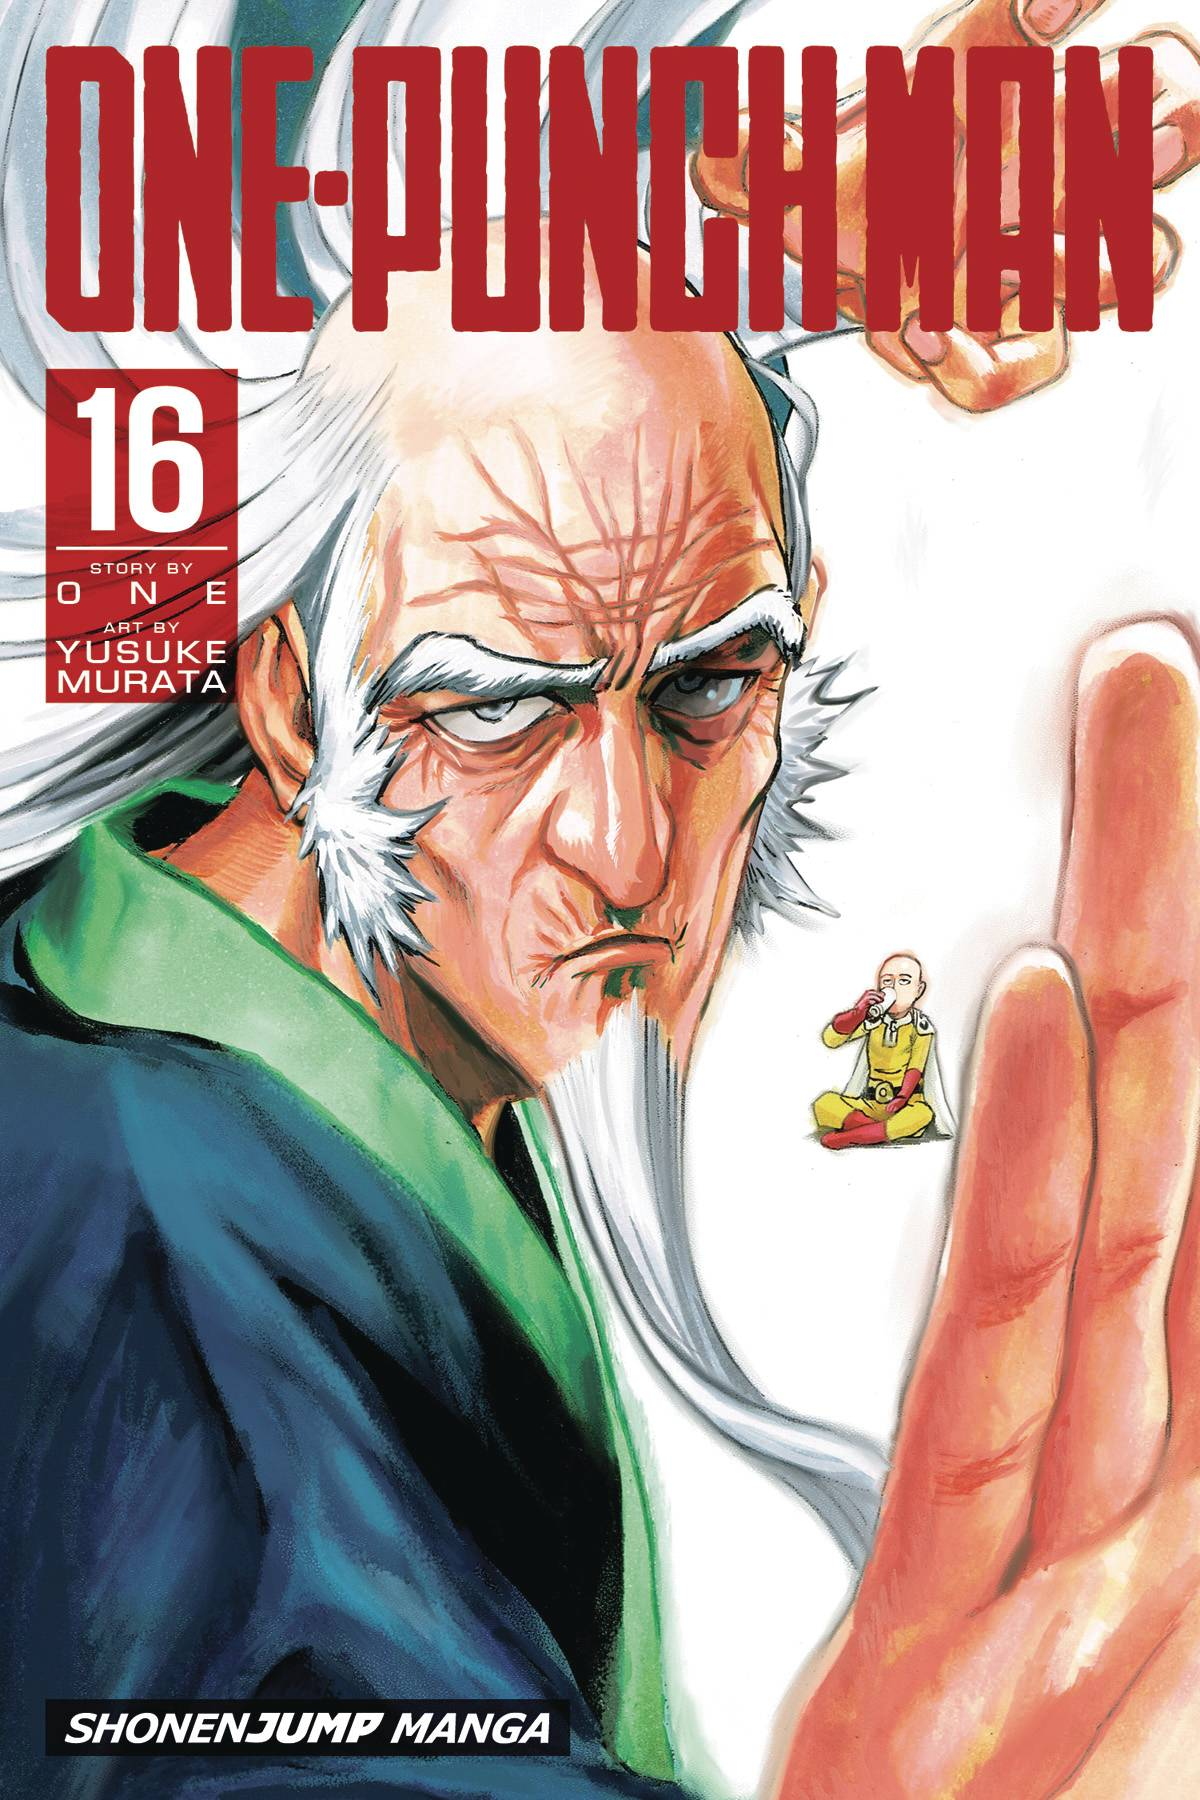 ONE PUNCH MAN GN 16.jpg